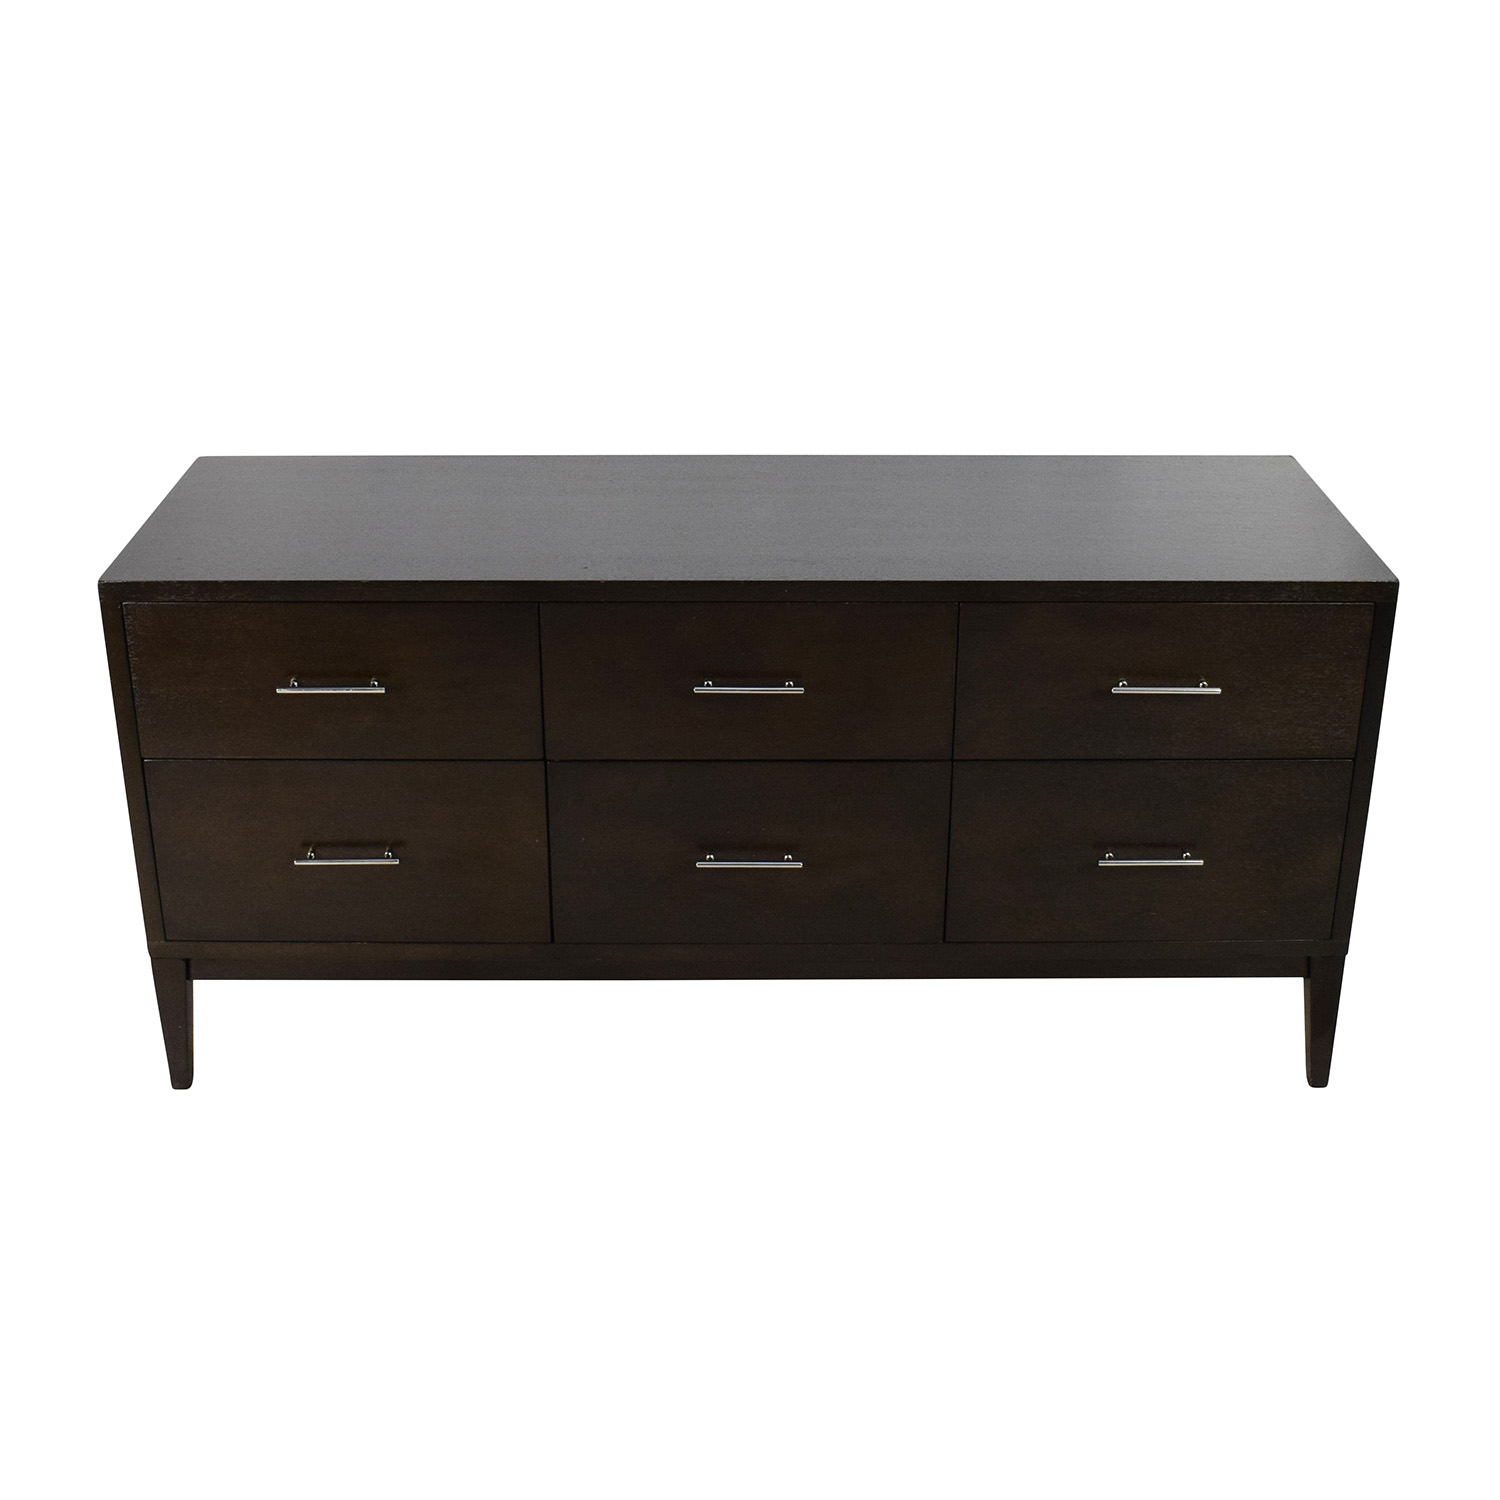 West Elm West Elm Narrow Leg 6-Drawer Dresser second hand